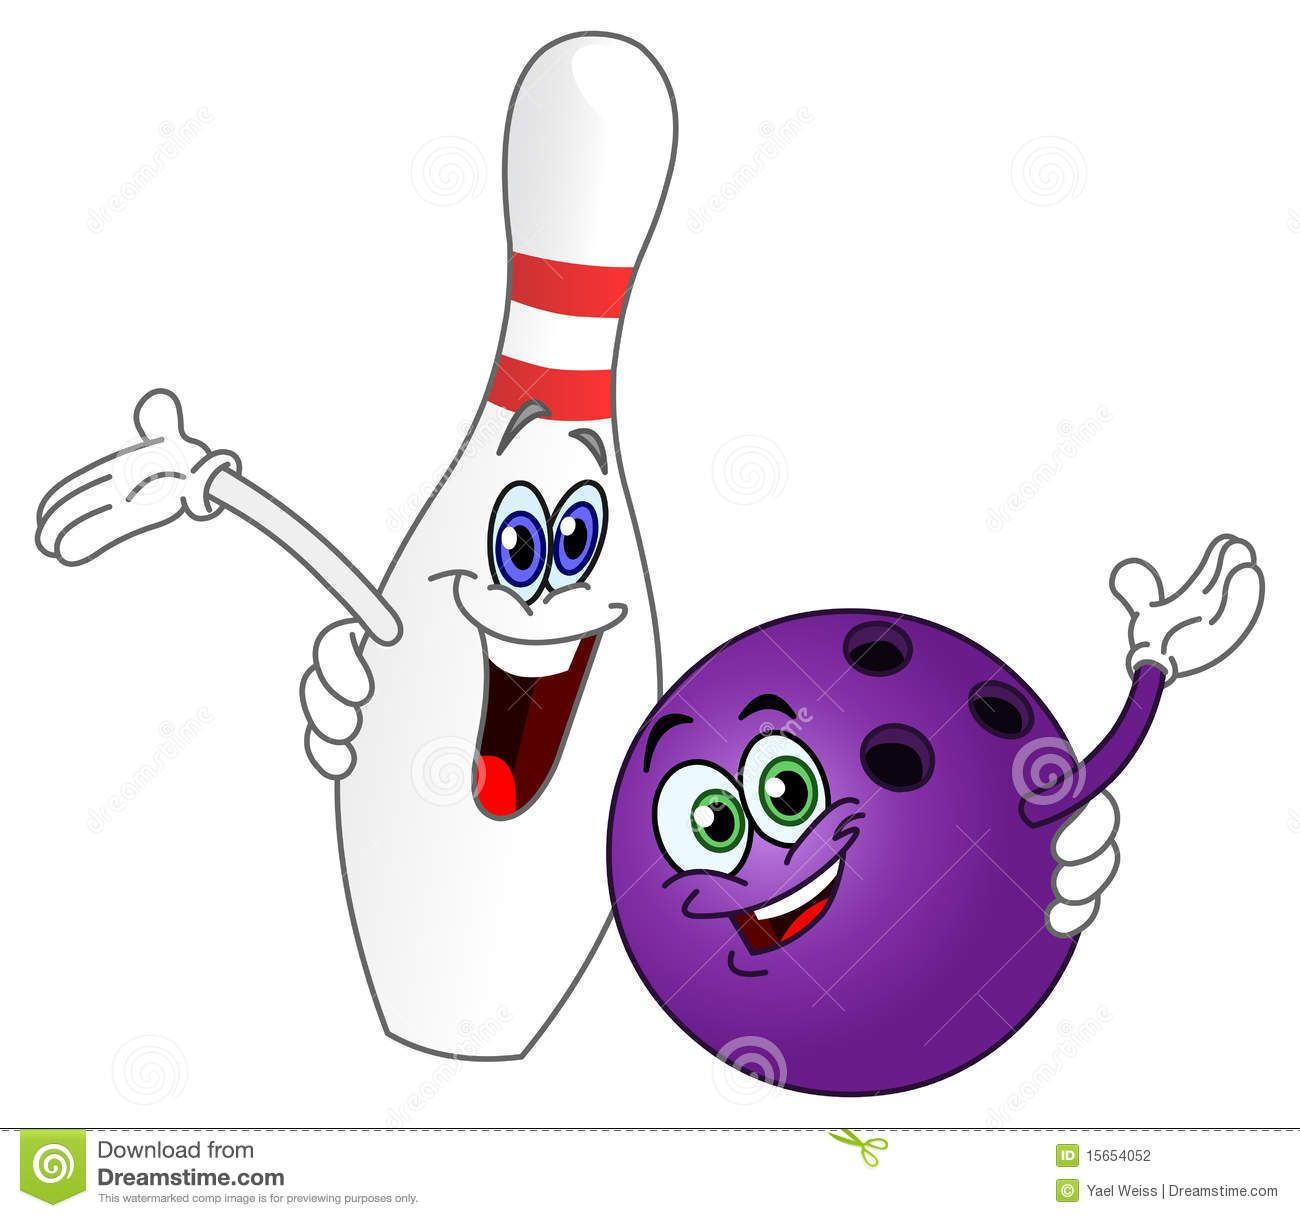 Pin By Brenda Means On Interesting Stuff Bowling Bowling Pictures Bowling Ball Art